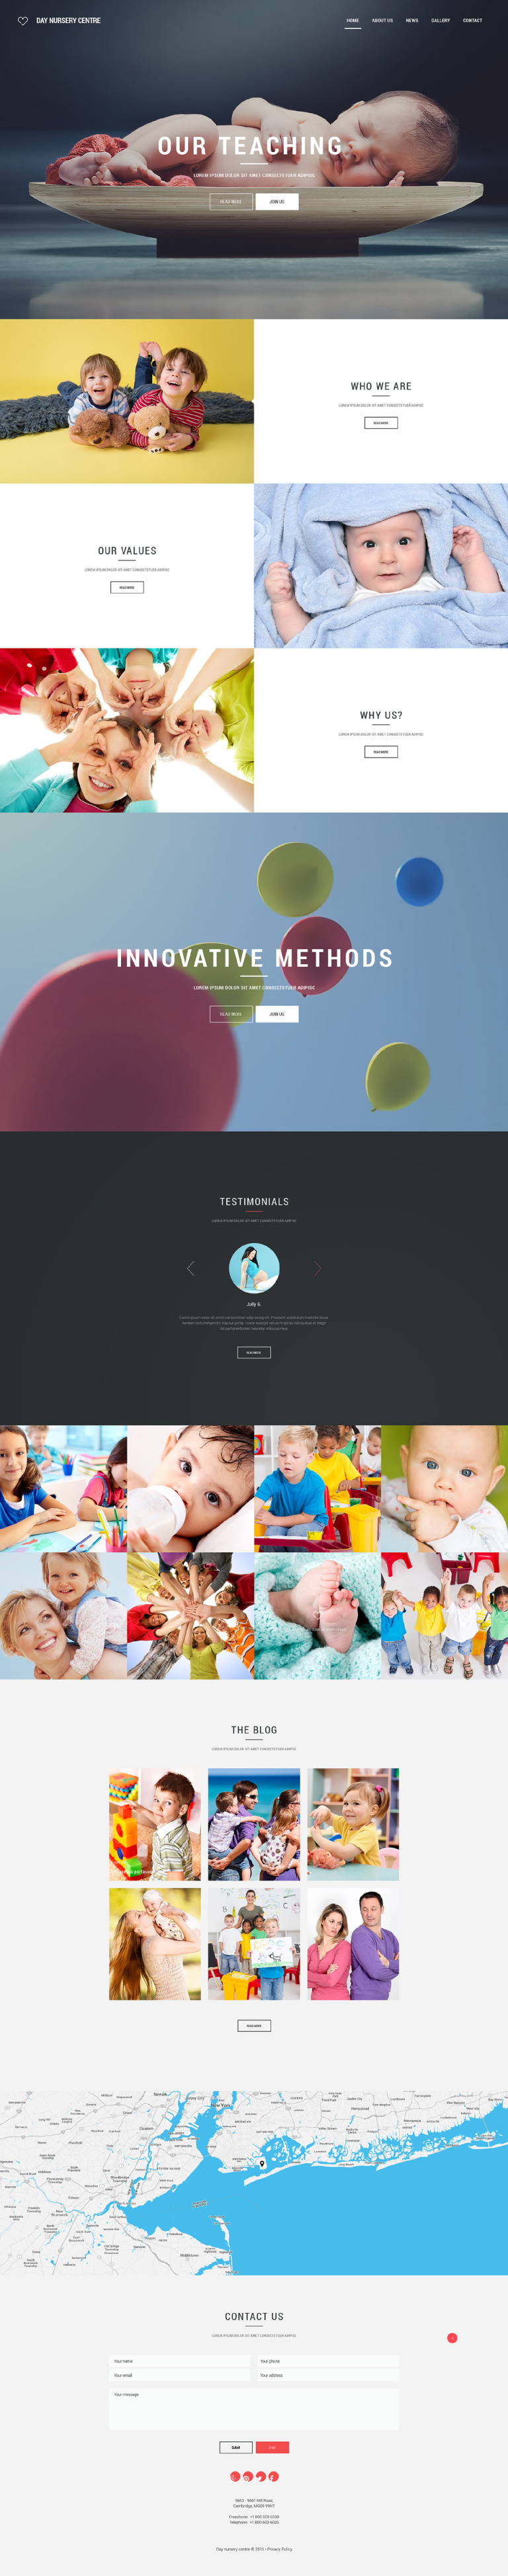 Day Nursery Centre Website Template New Screenshots BIG